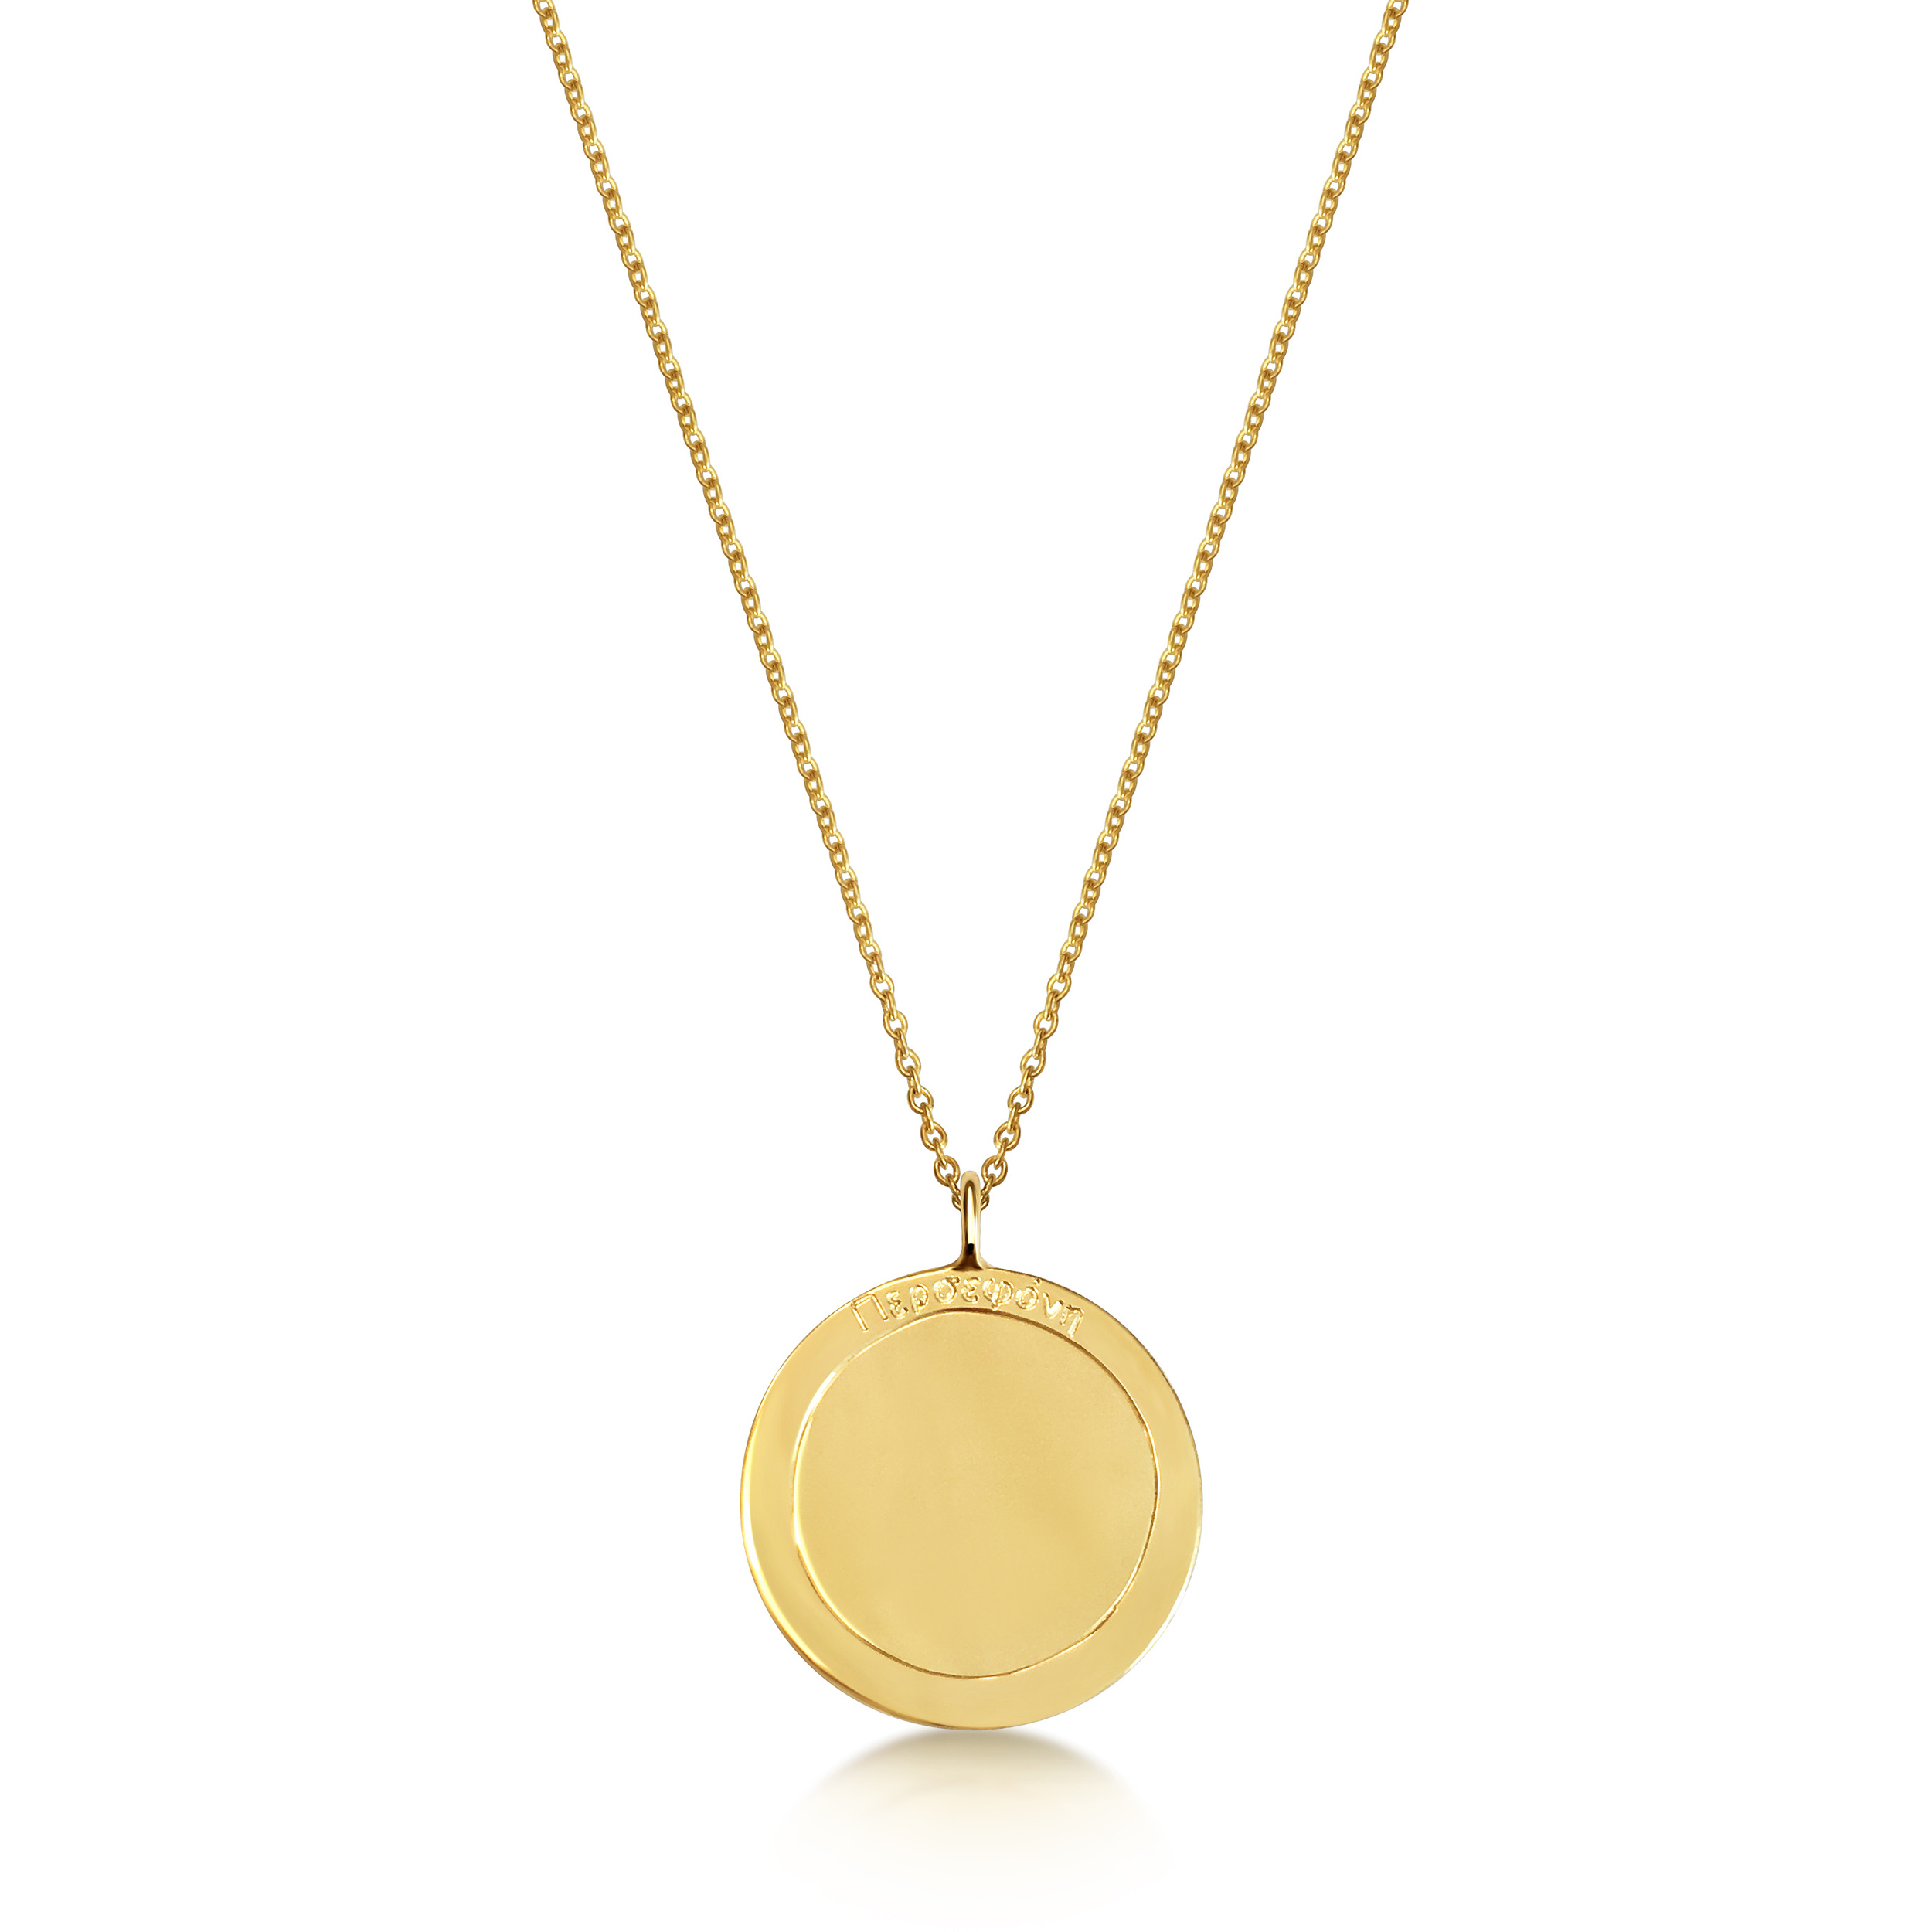 Bespoke-9ct-yellow-gold-disc-pendant-with-hand-engraved-pomegranate-3.jpg